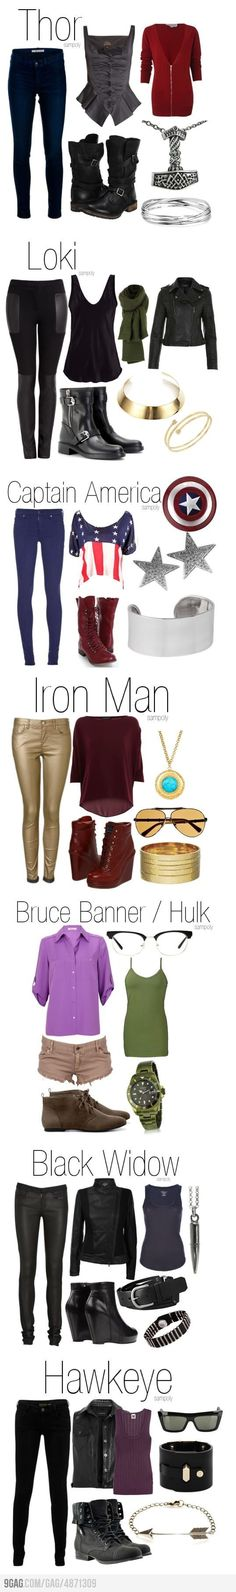 Avengers style, assemble! I call dibs on Hulk. Mostly because I already have that outfit.